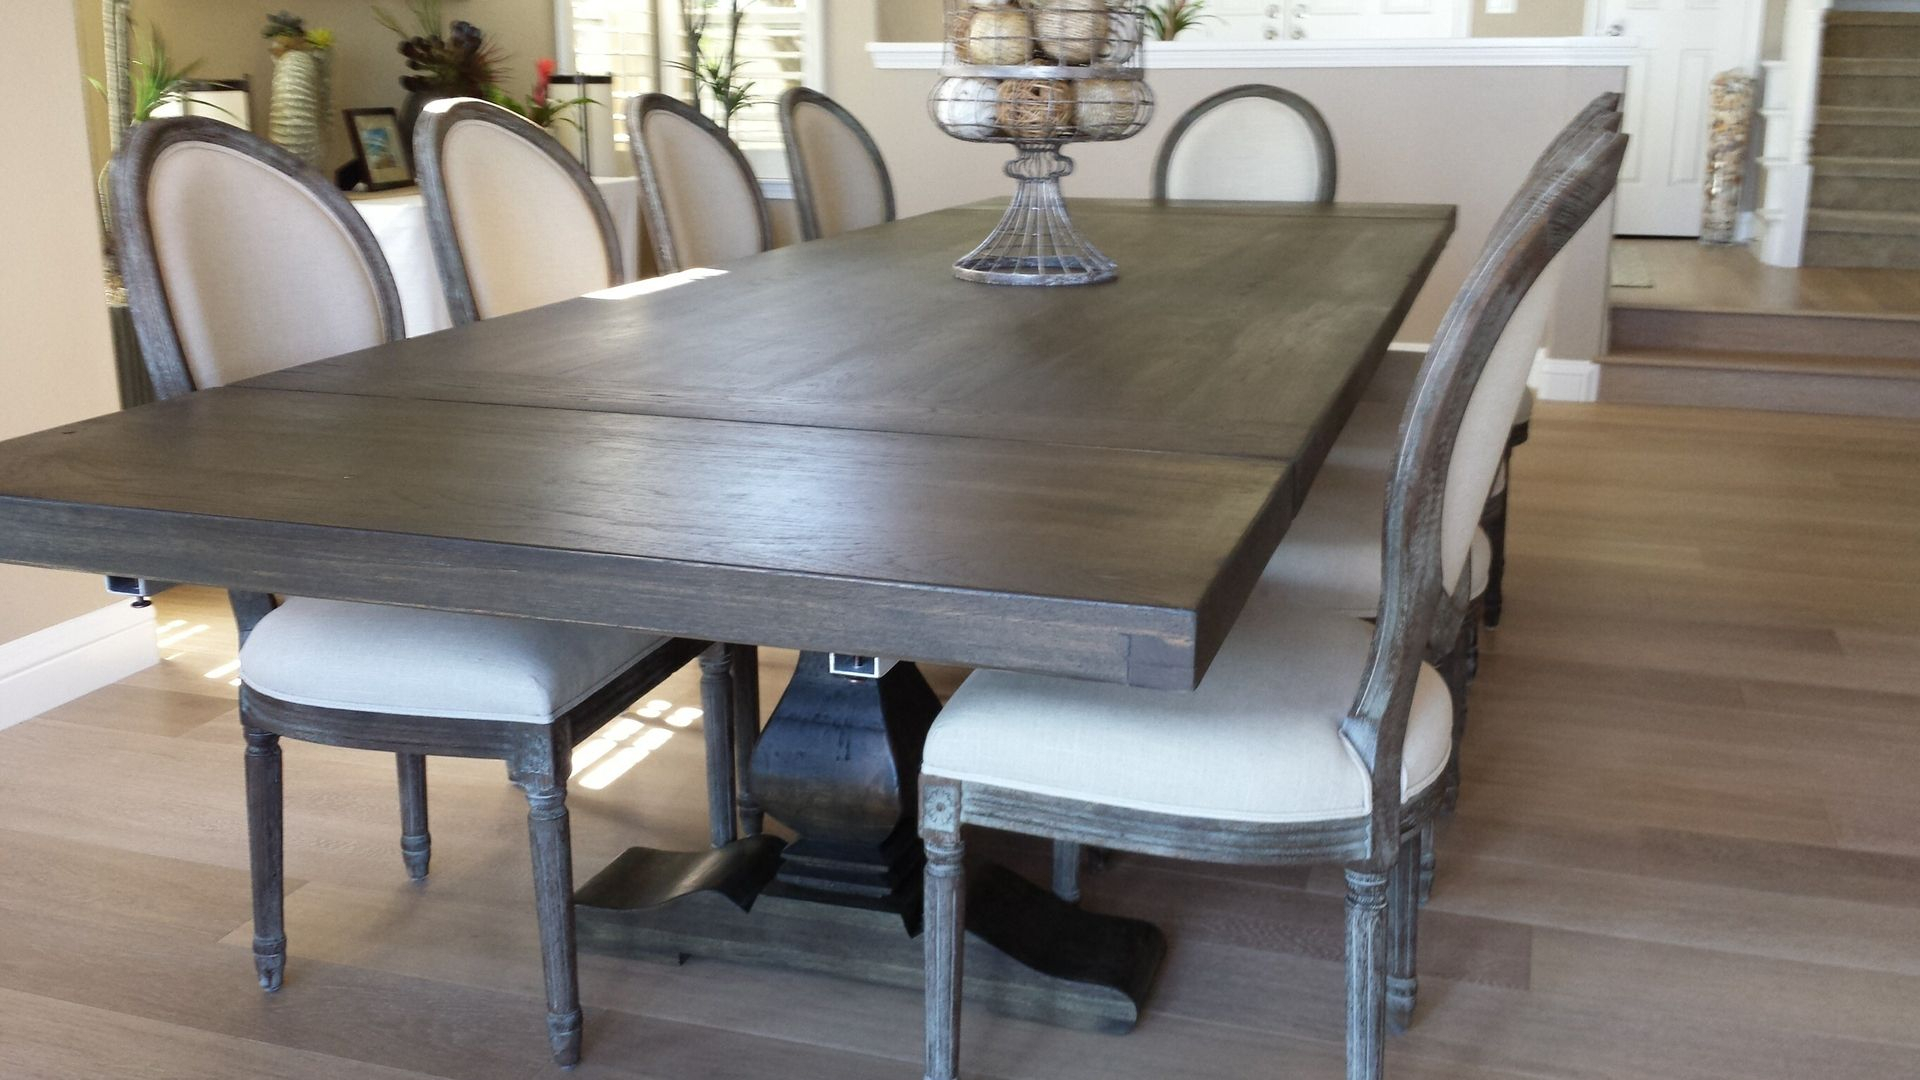 Dining And Kitchen Tables | Farmhouse, Industrial, Modern In Most Recently Released Modern Farmhouse Extending Dining Tables (View 21 of 25)